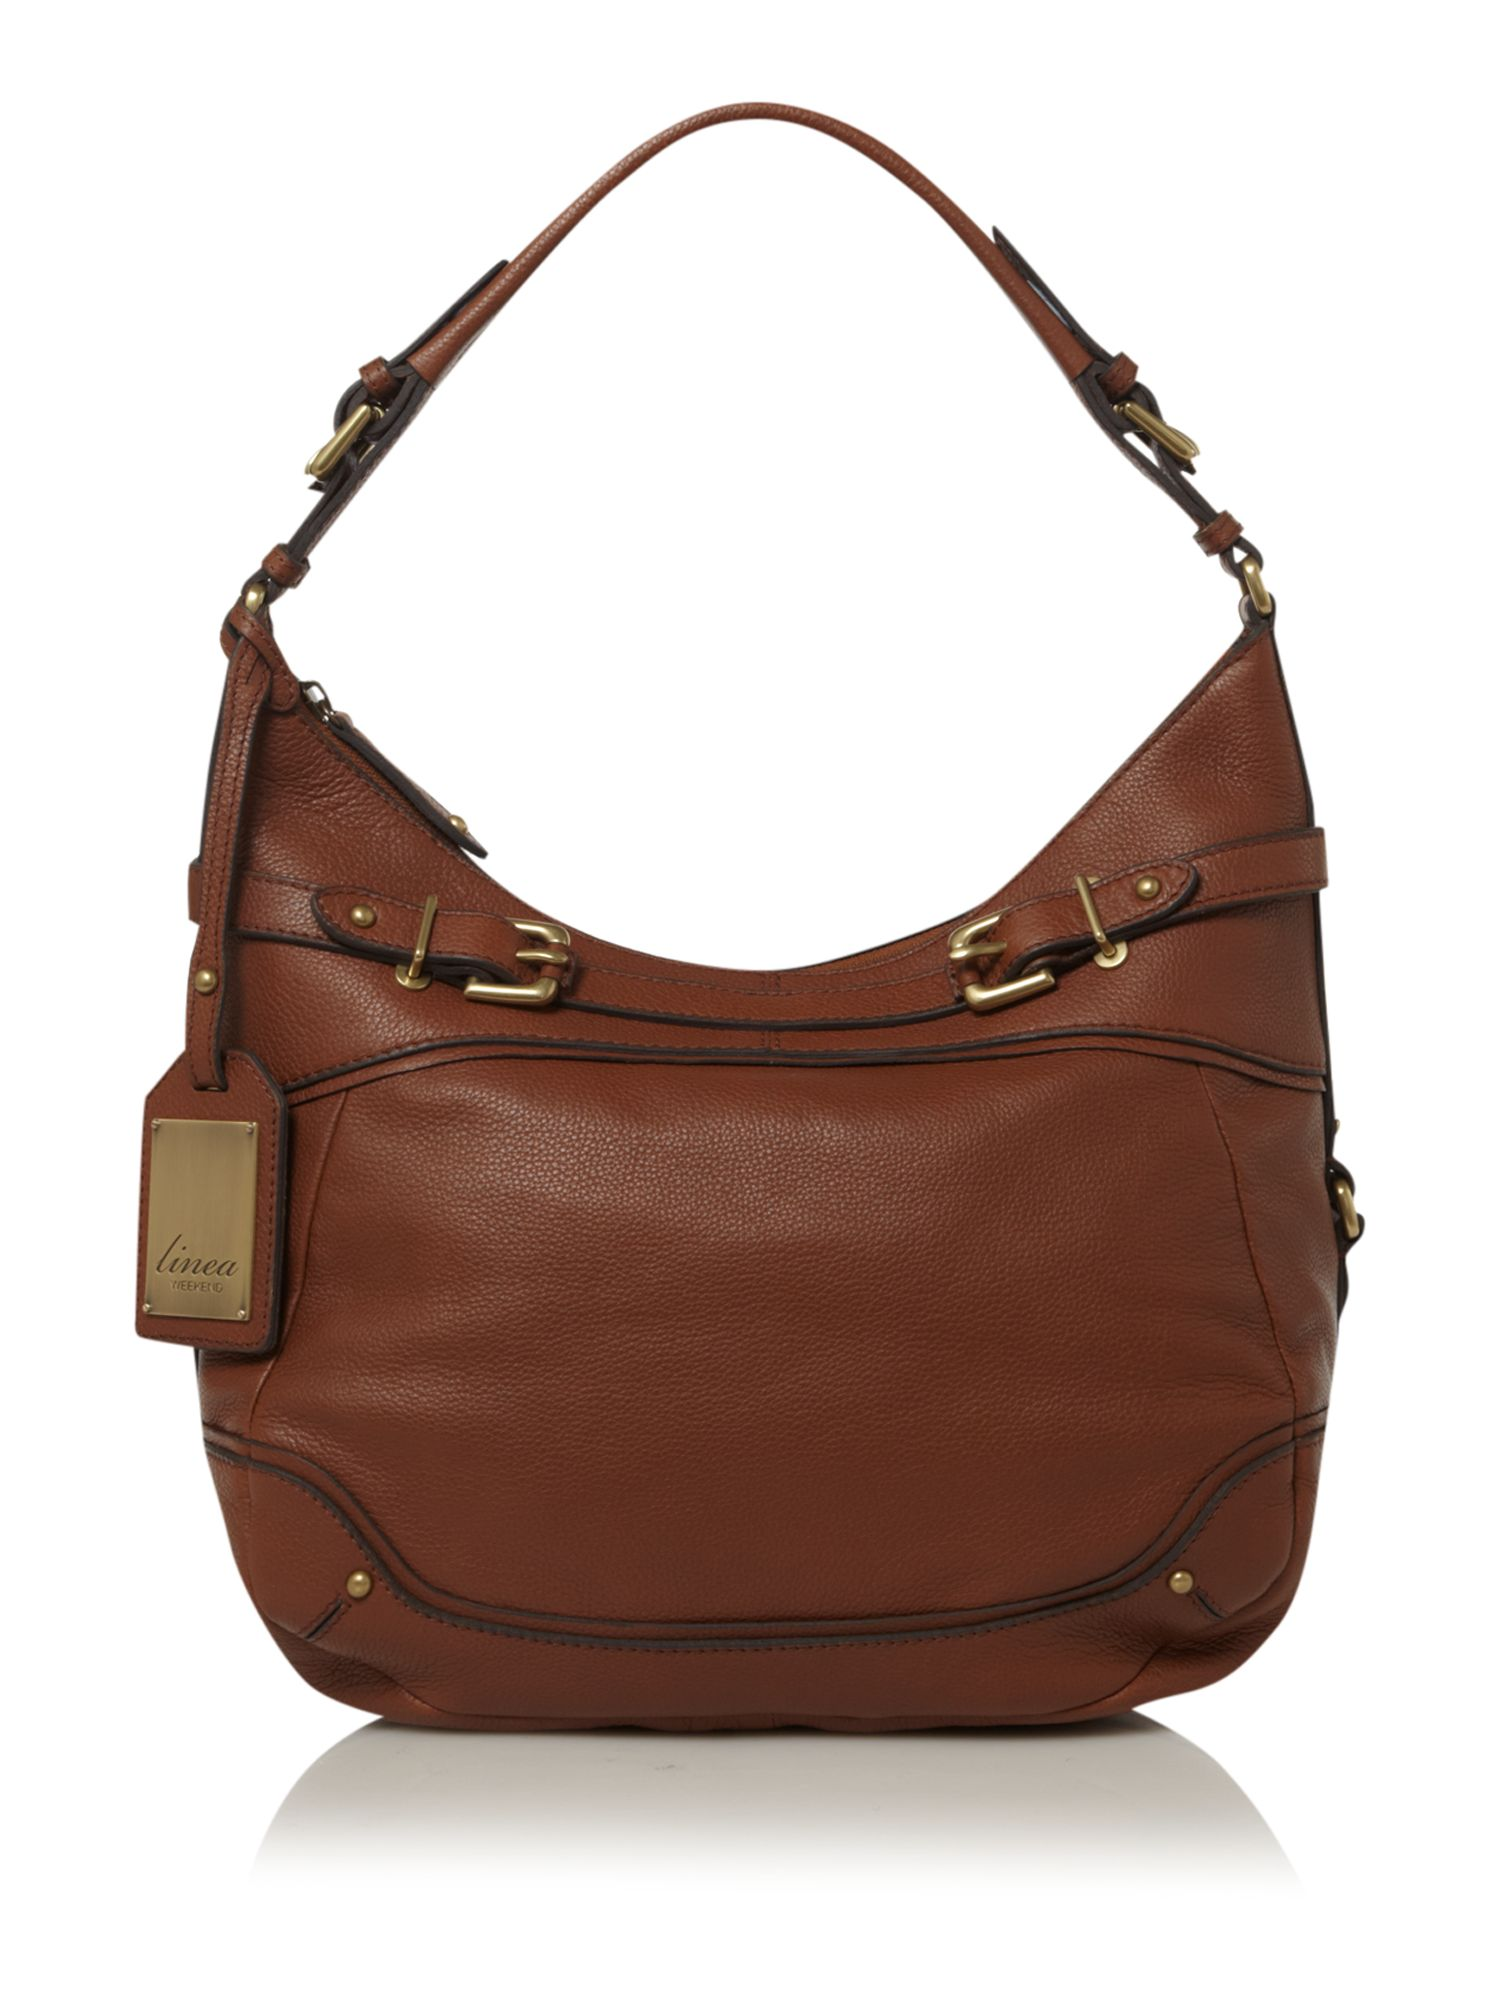 Martha shoulder bag